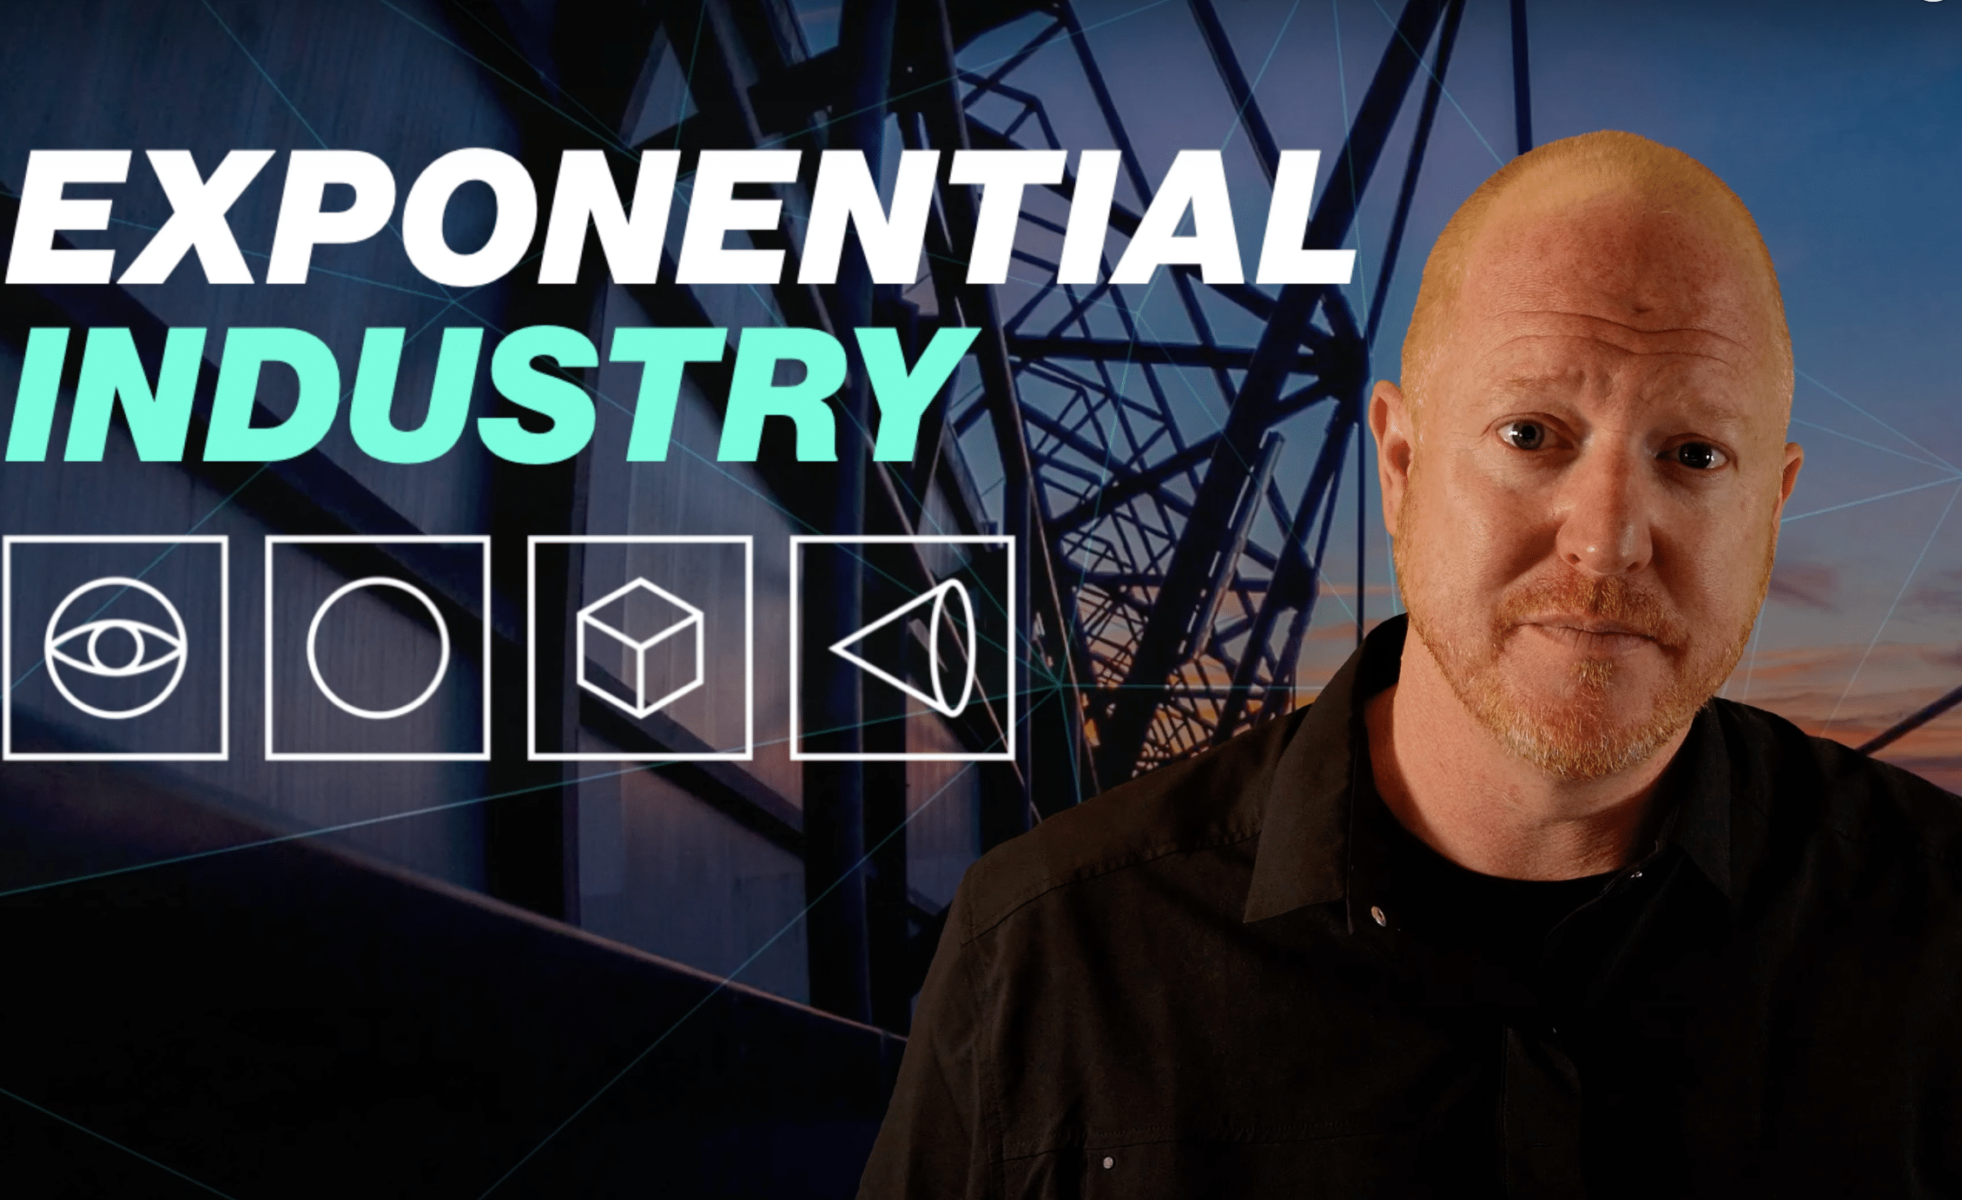 Future of Exponential Industry